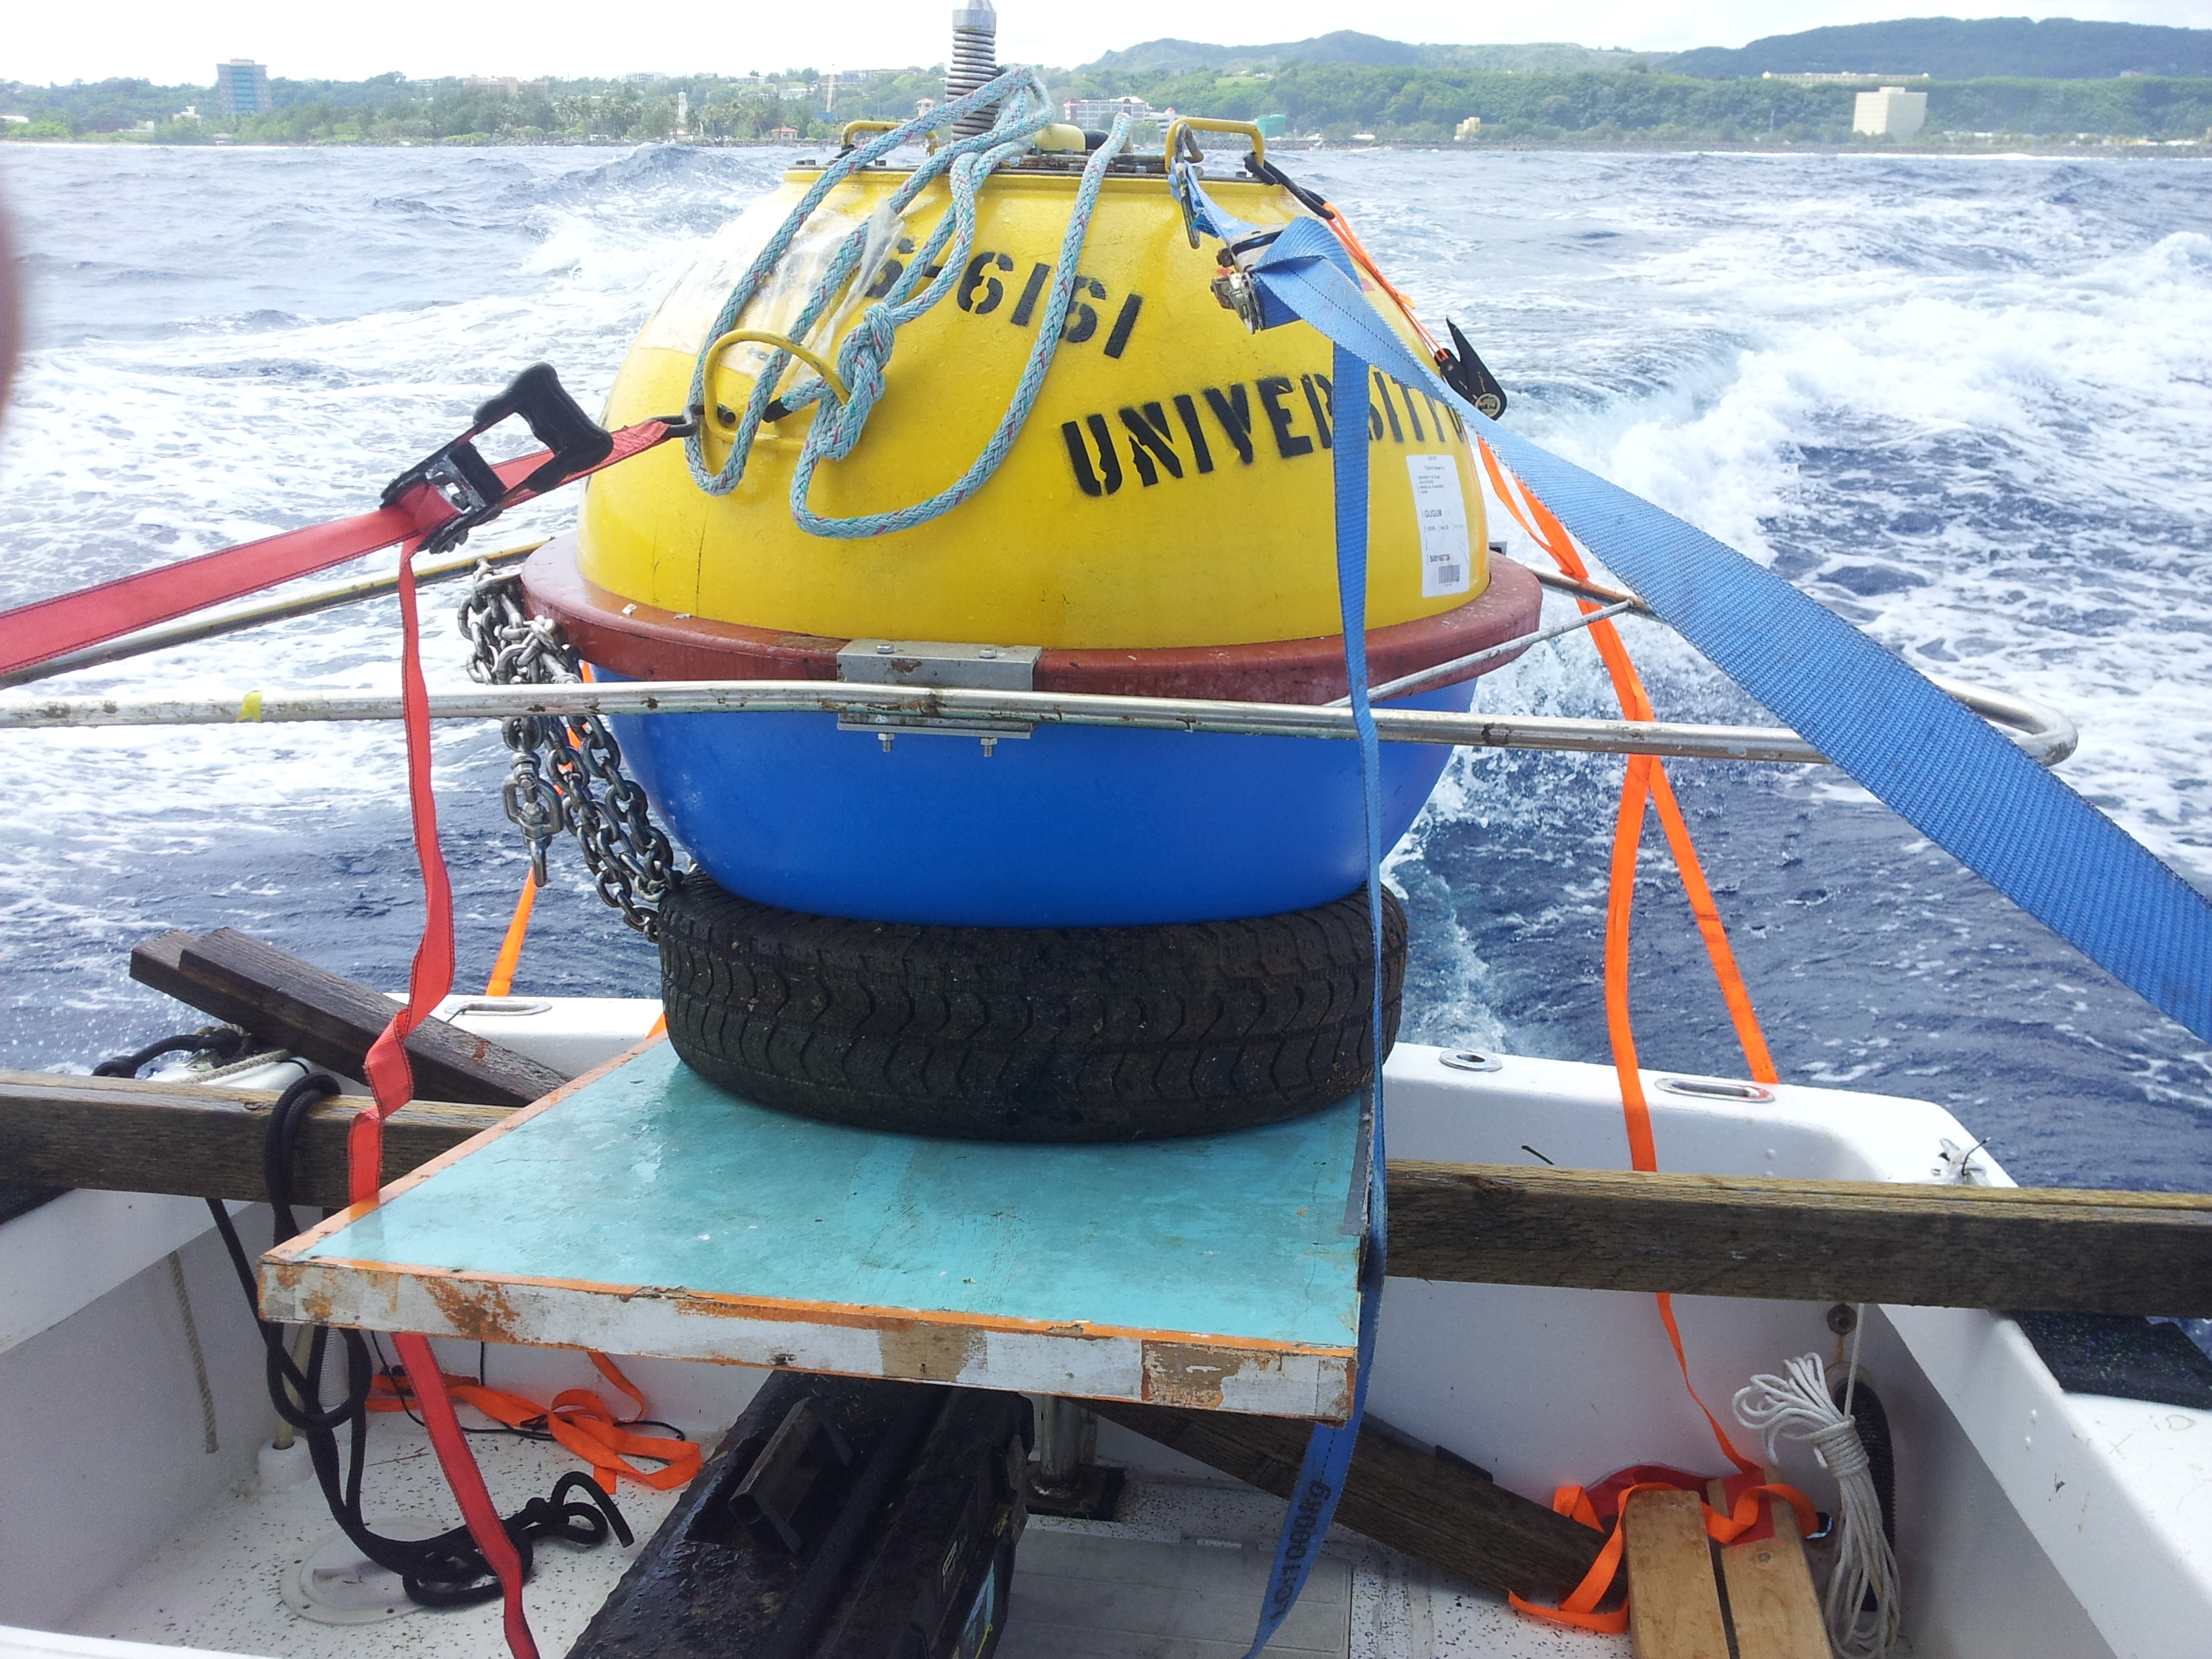 New buoy to be swapped with old